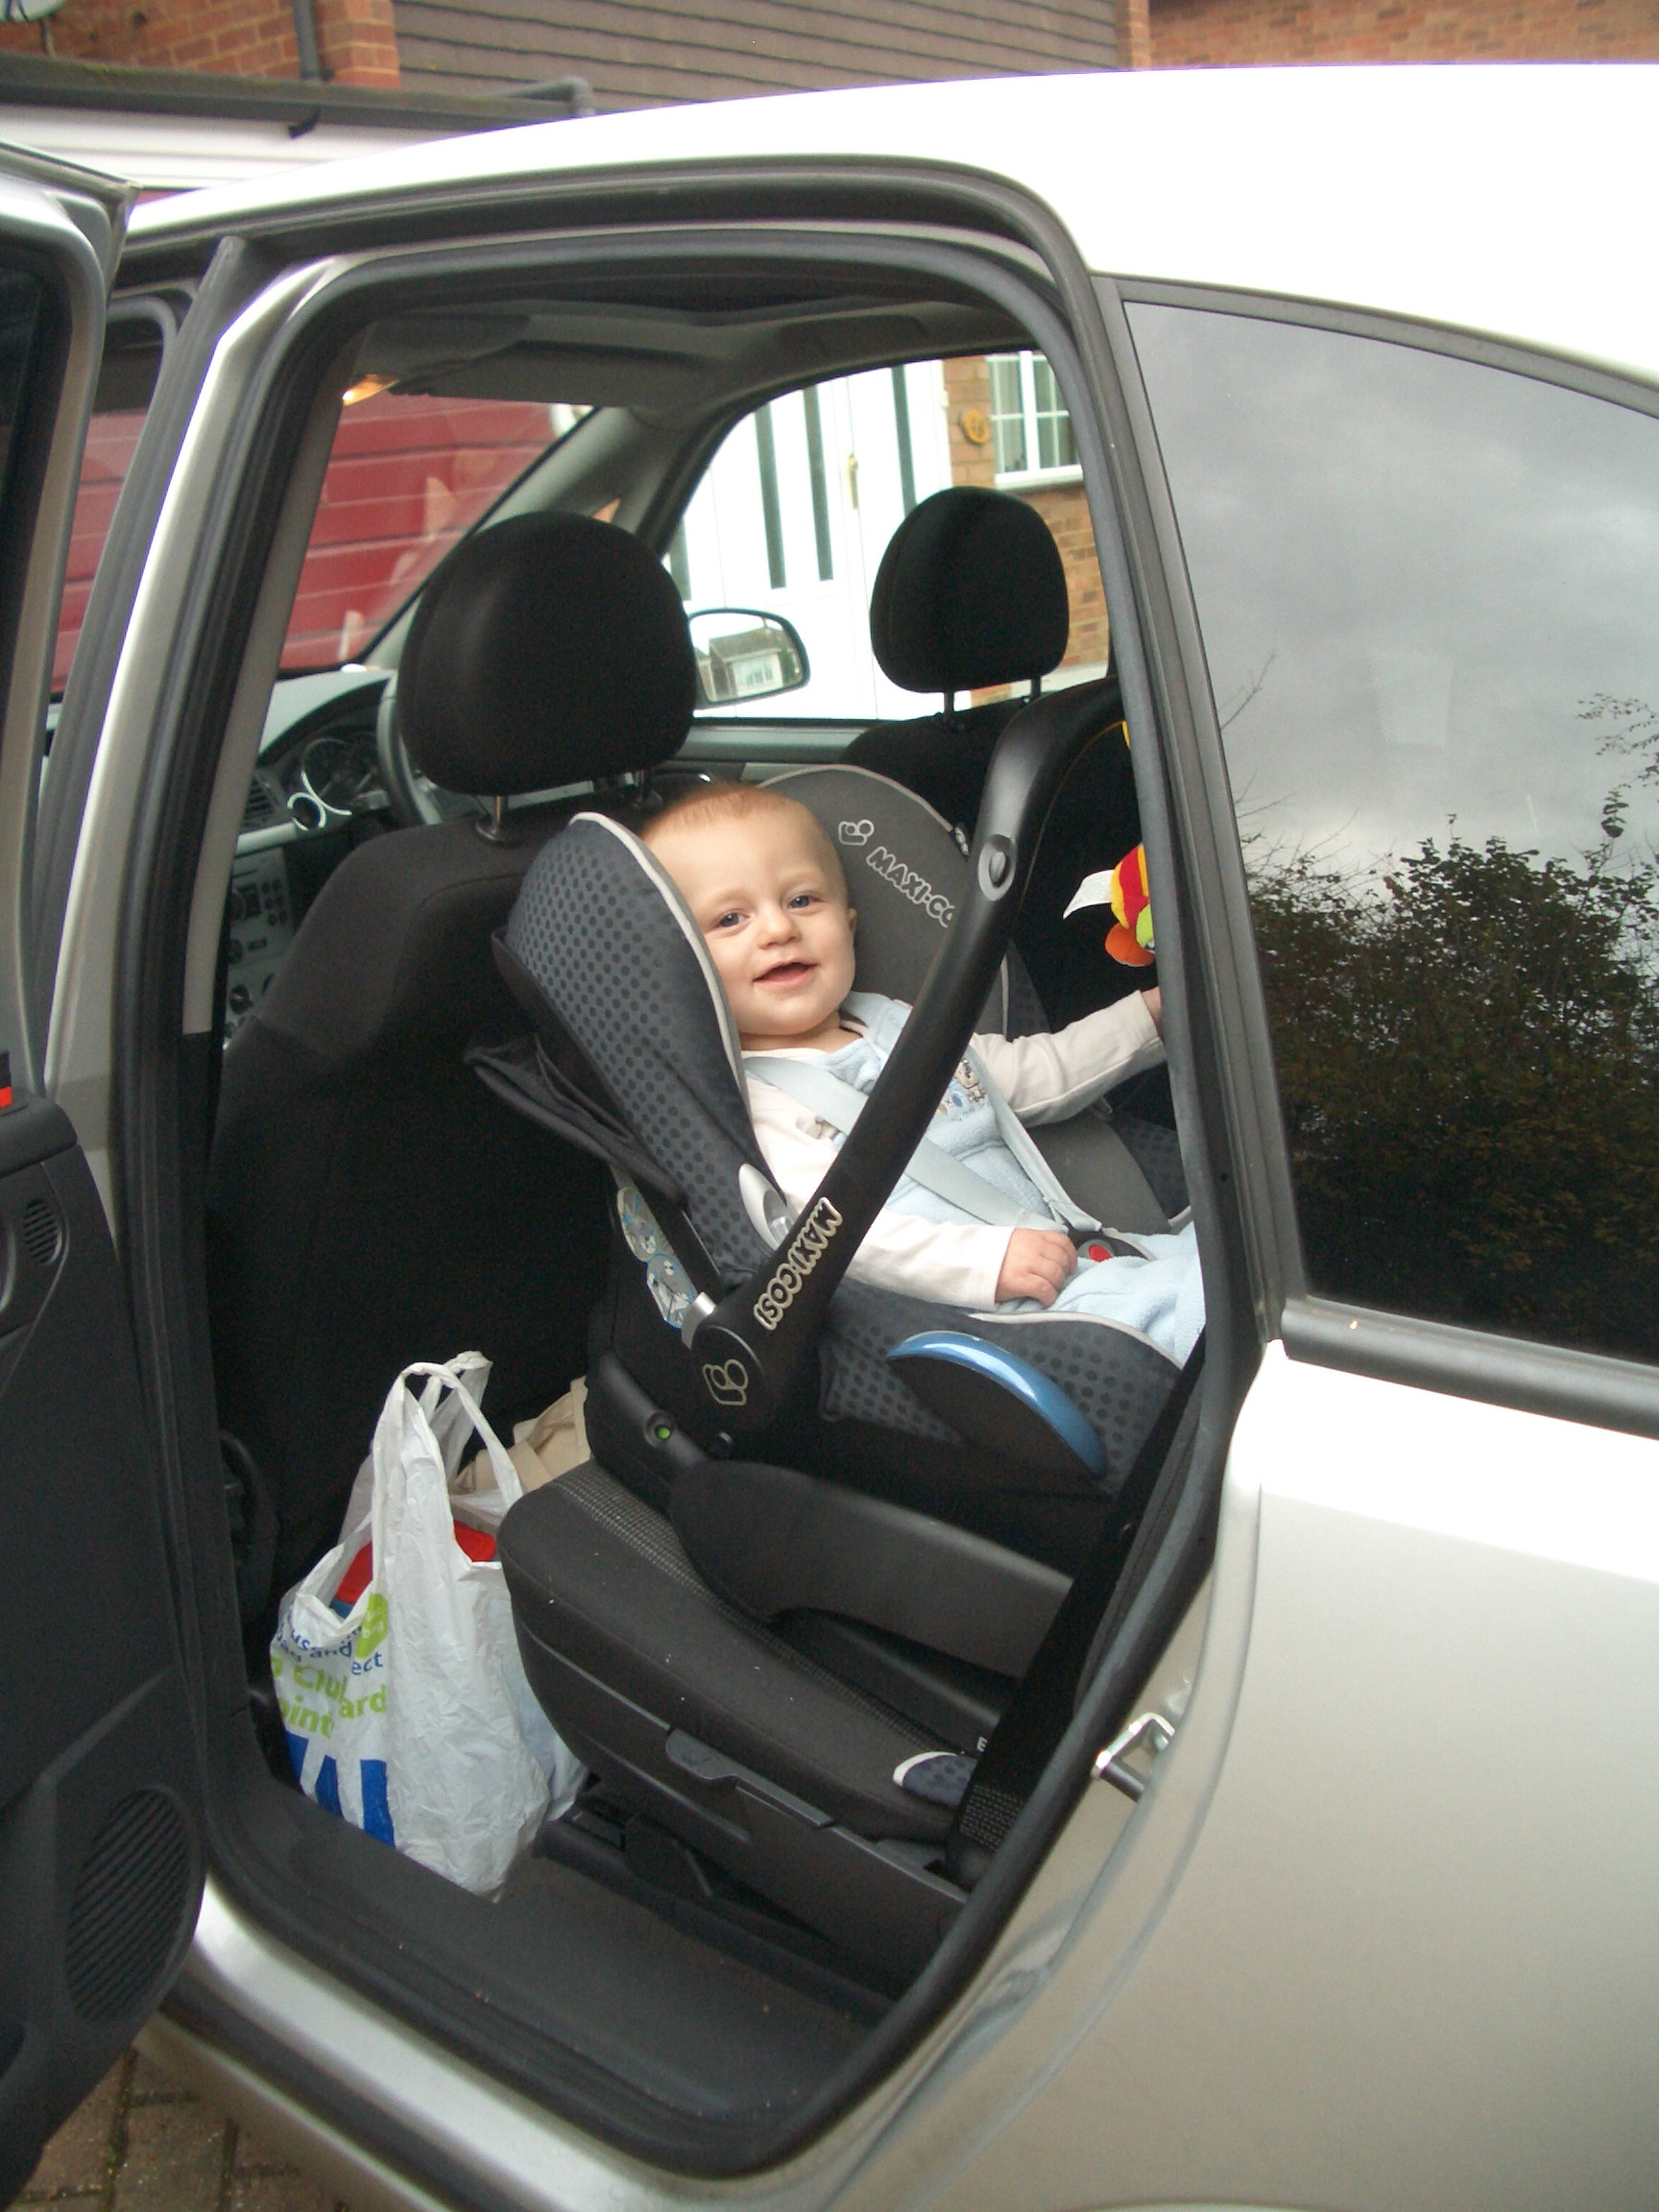 Rear facing baby seat in car with isofix